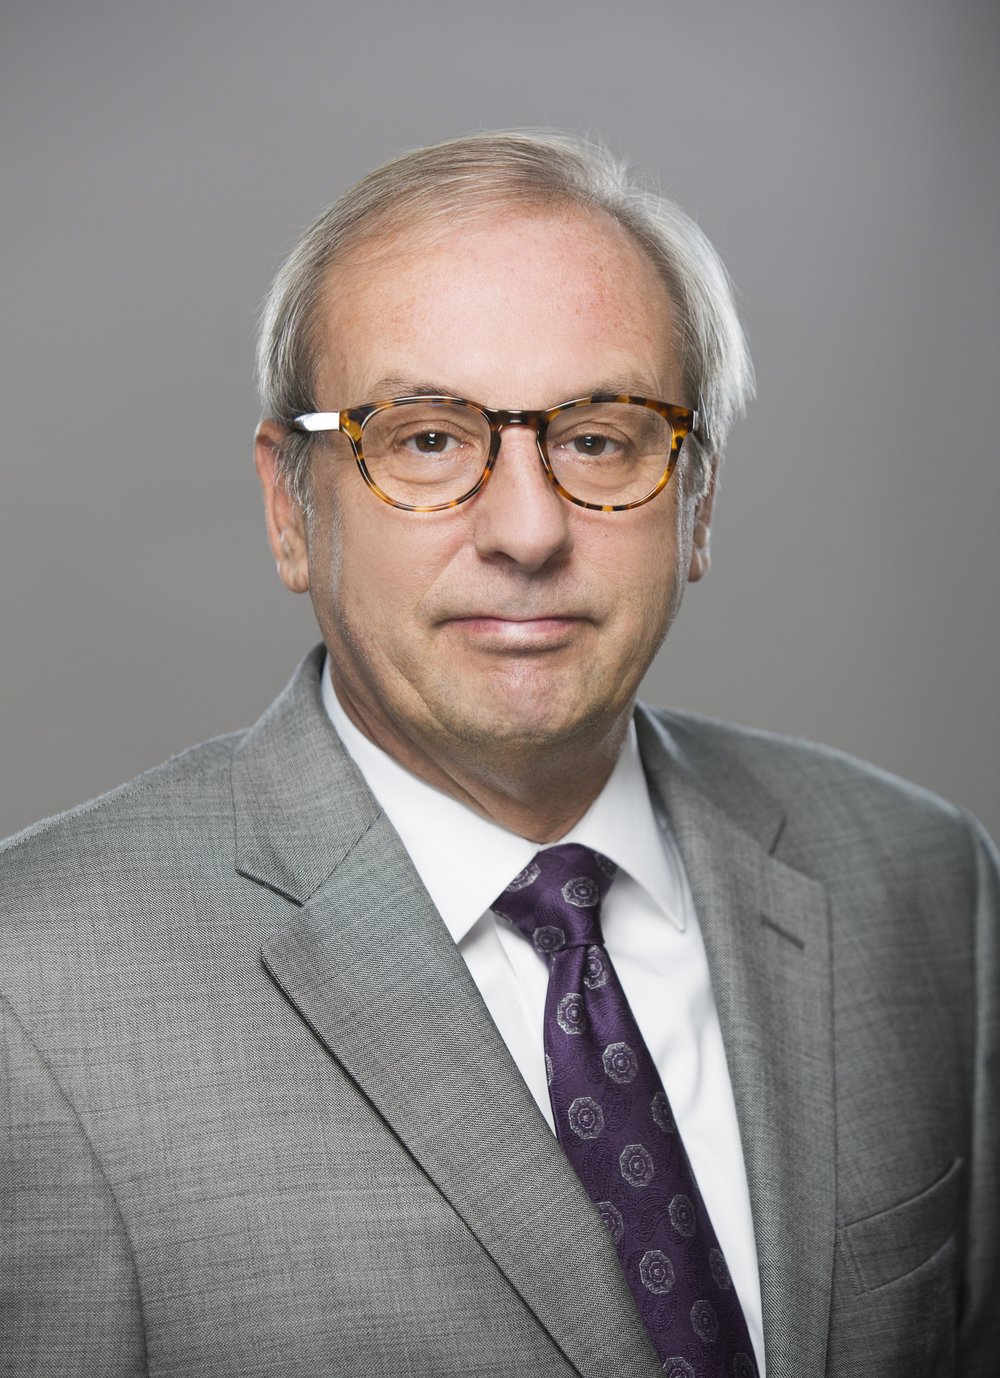 Mike Mercier, Chief Financial Officer